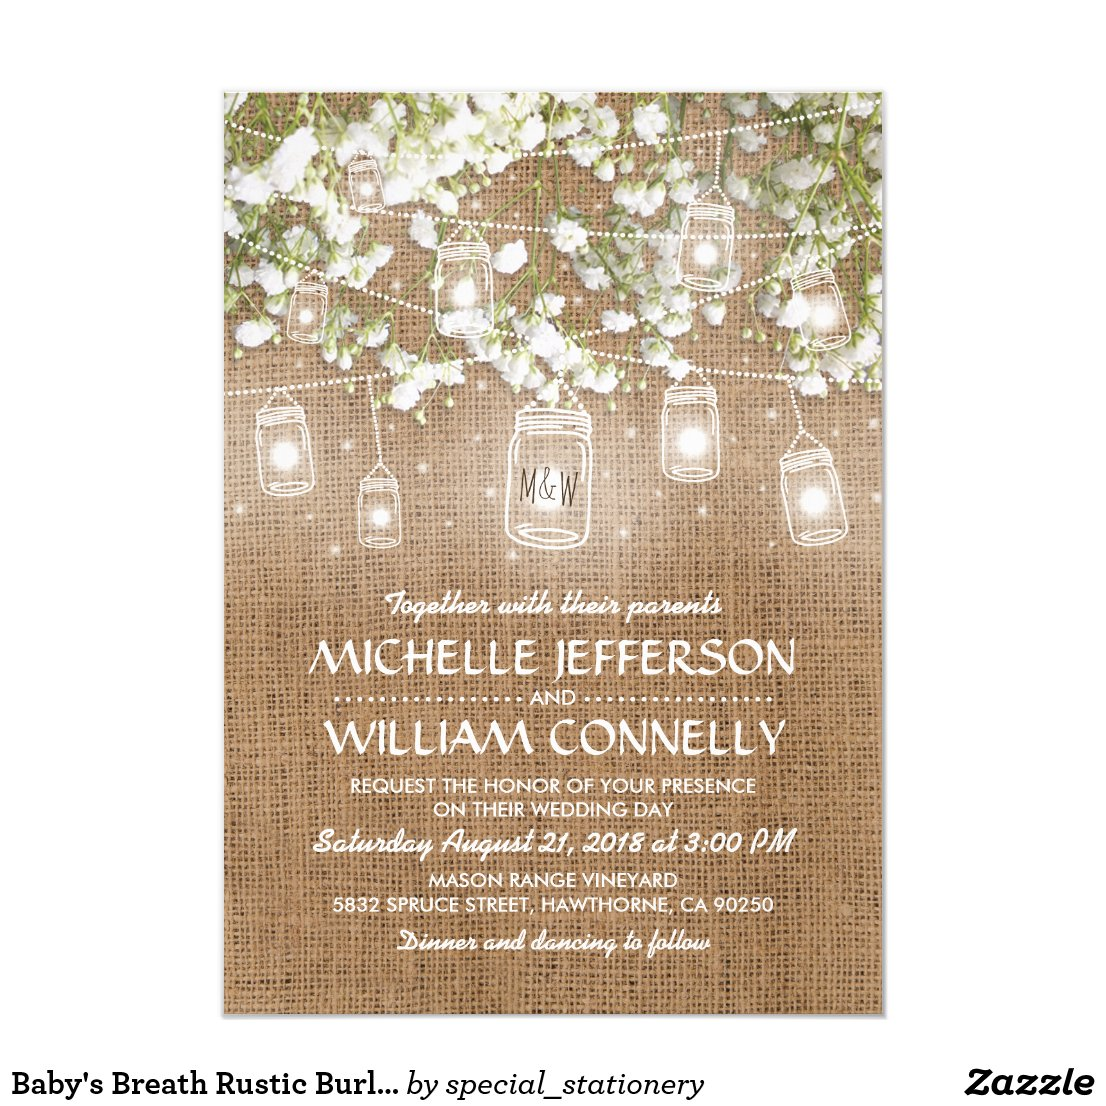 Baby's Breath Rustic Burlap Wedding Card